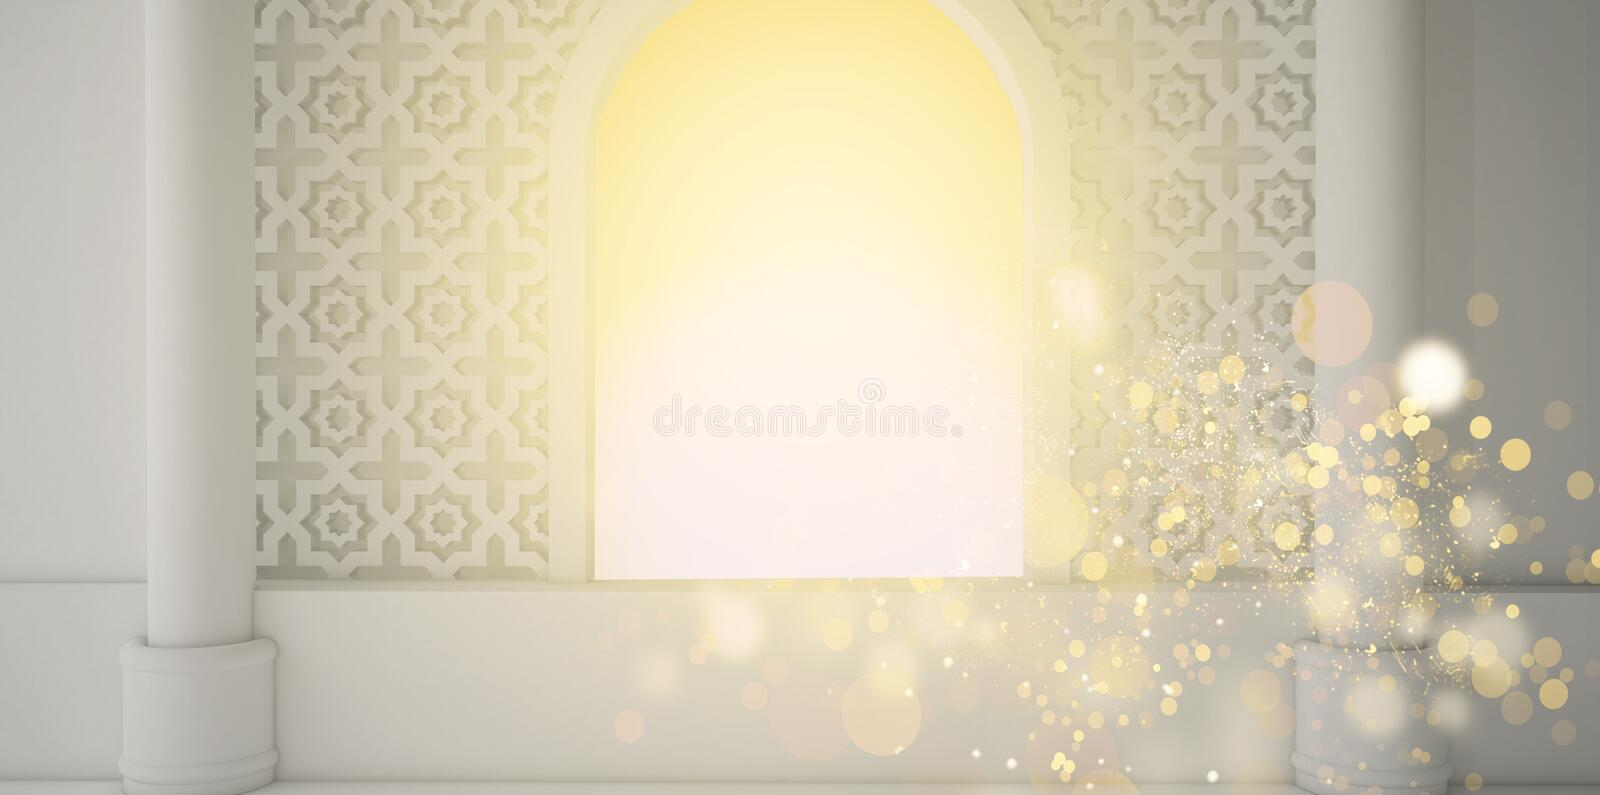 Abstract fruit background, pineappleEastern room, open window, sunlight and magic beams. 3D rendering vector illustration